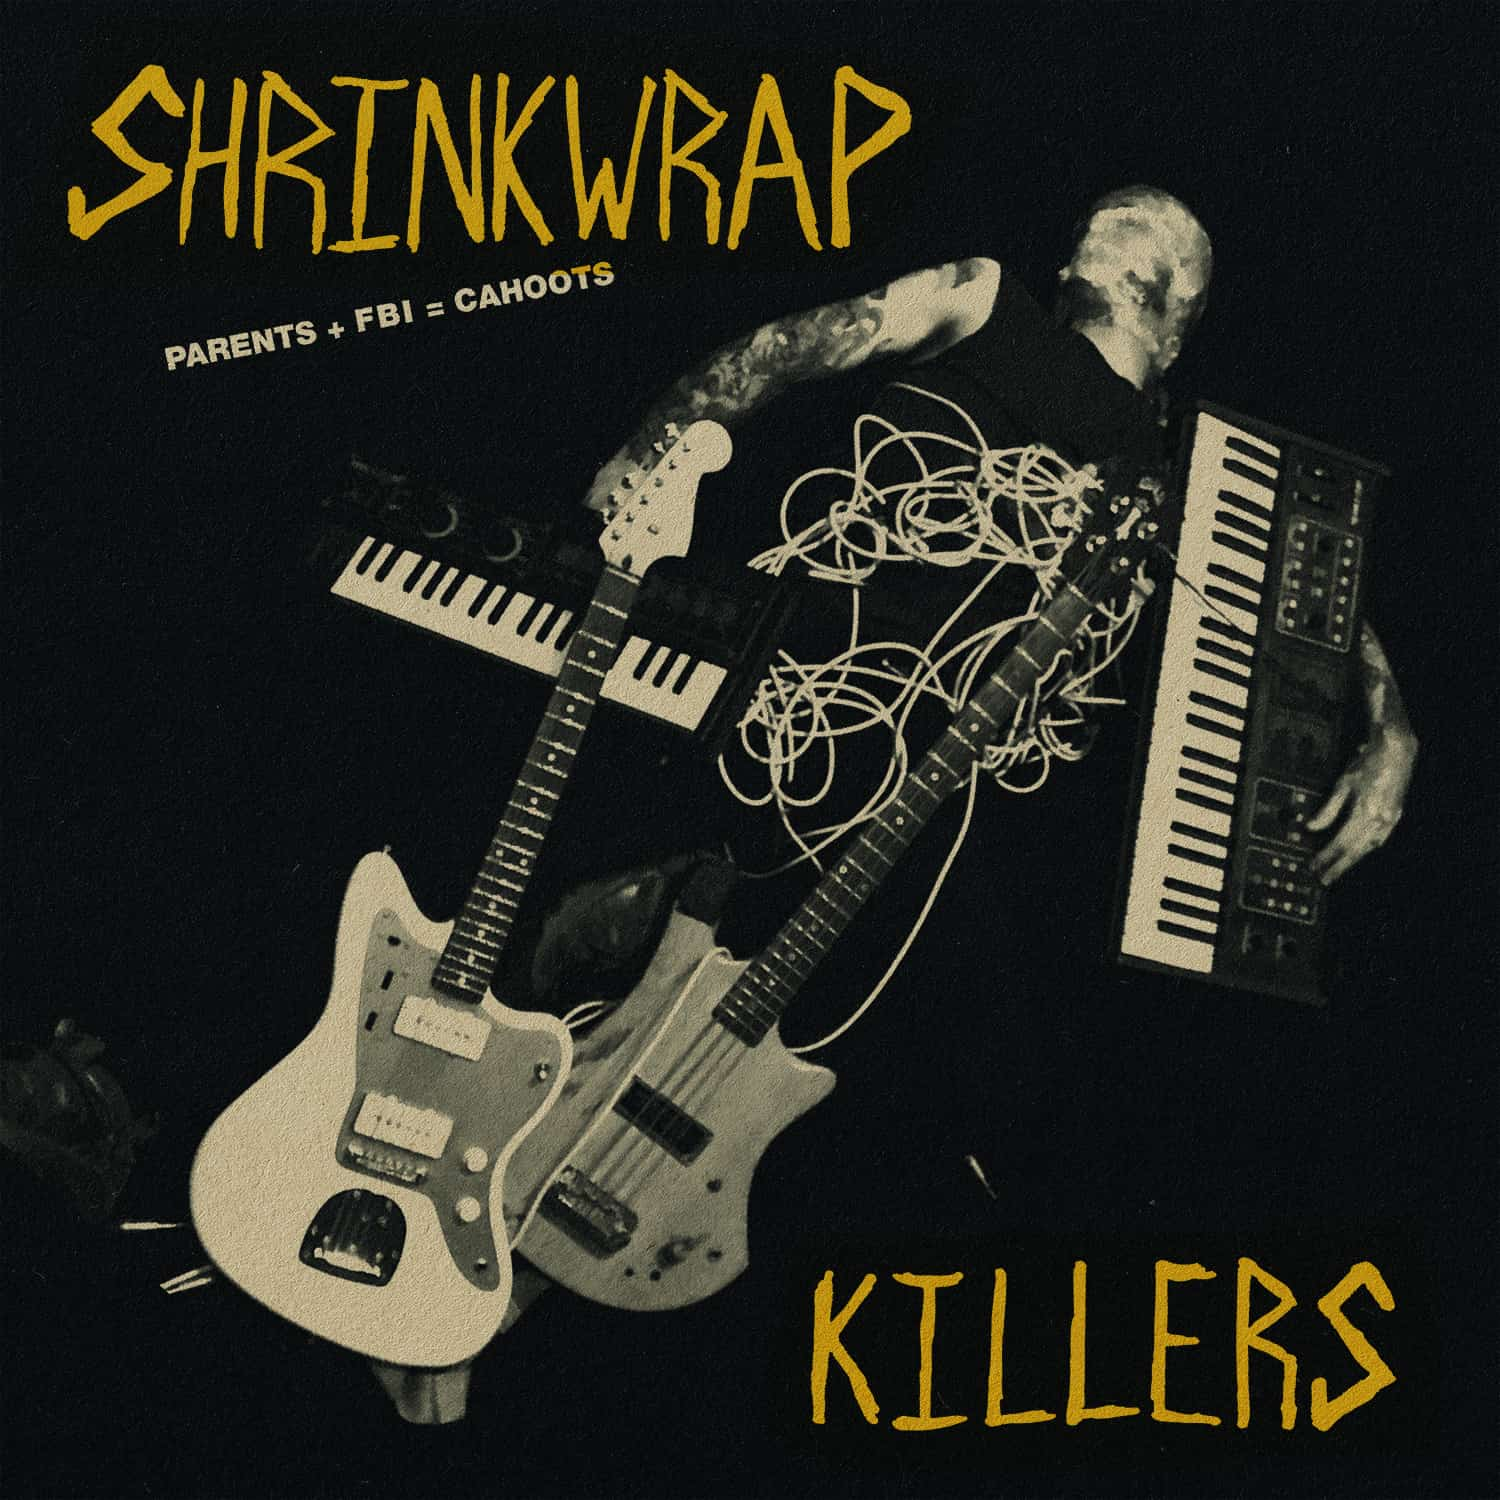 Shrinkwrap killers K-cahoots-1500-CMYK